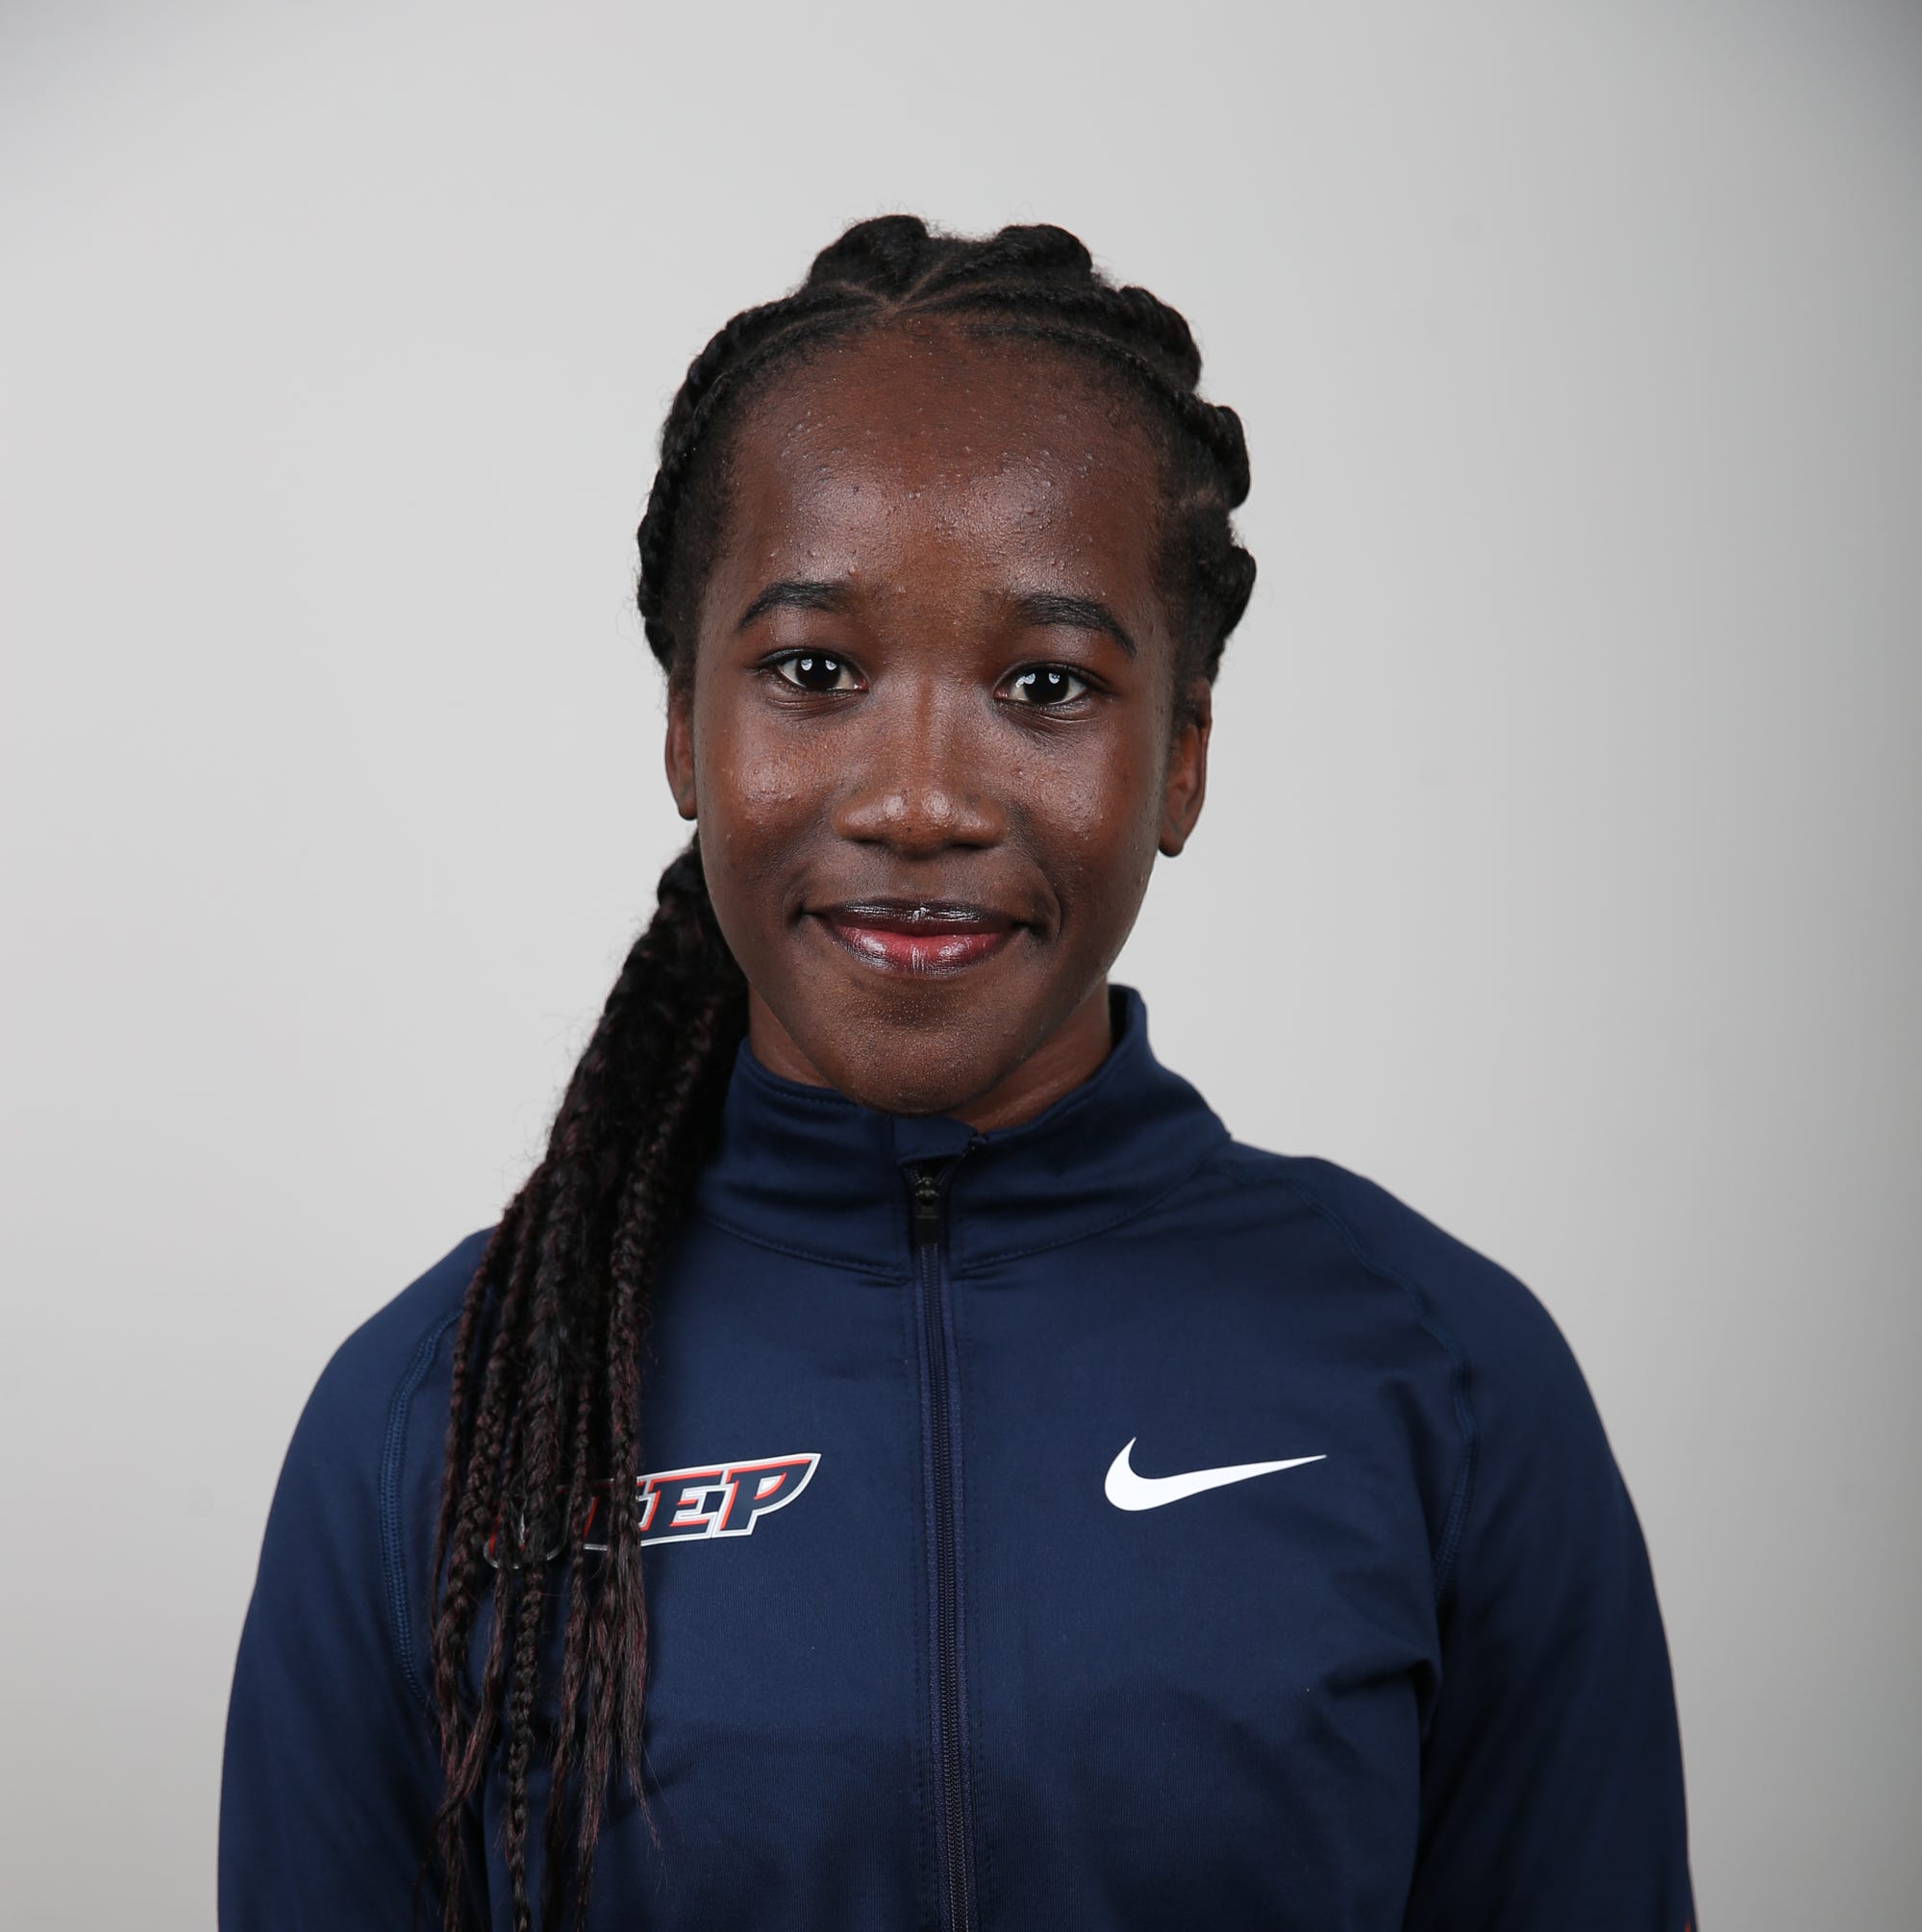 Guyanese jumper Bright emerges as freshman star for UTEP track